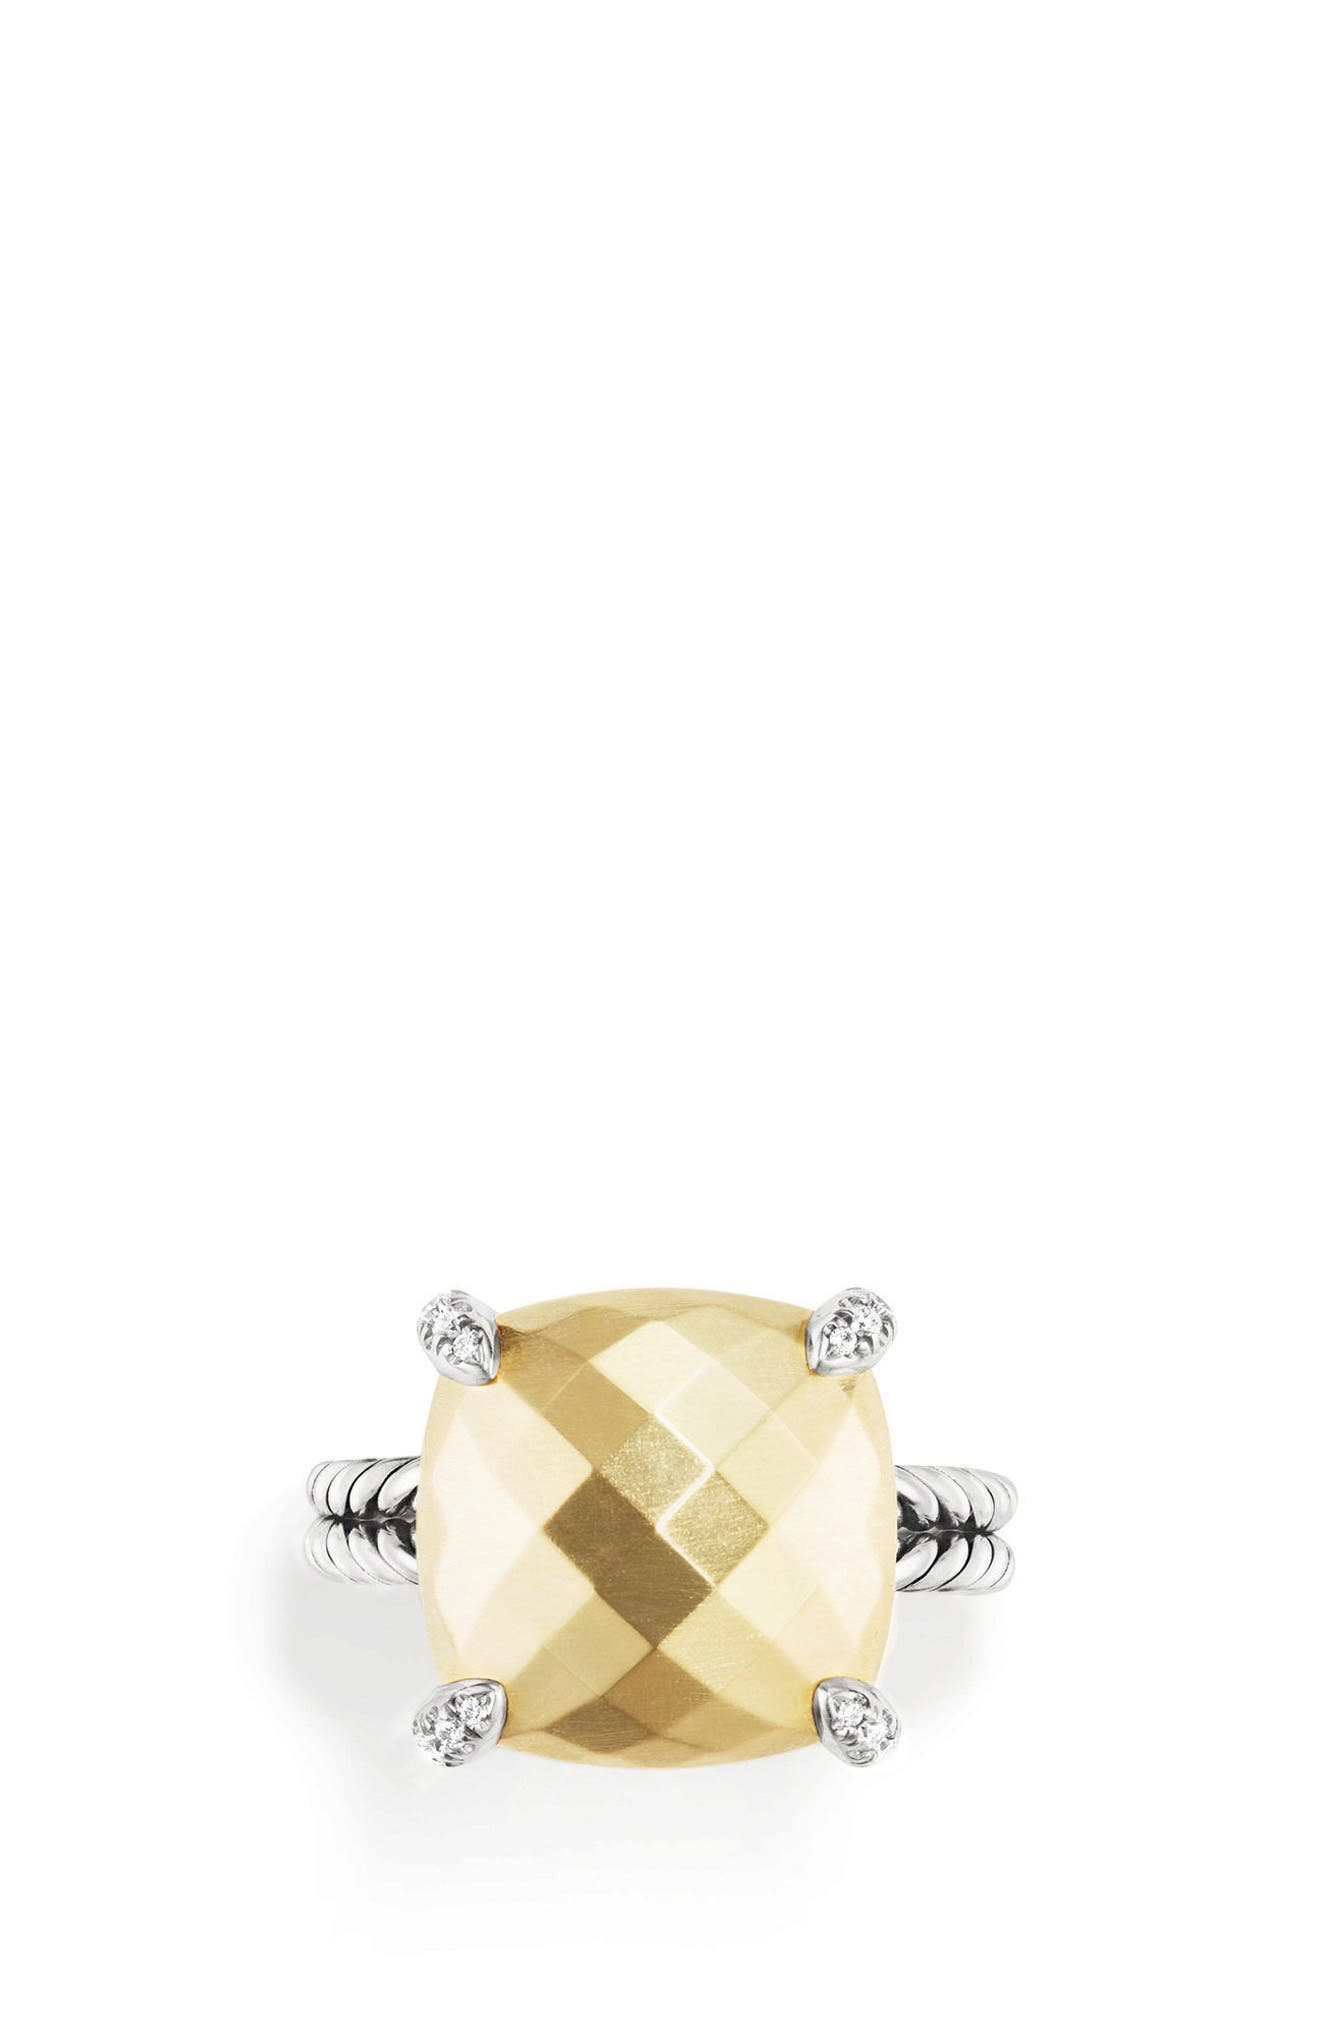 Chatelaine Ring with 18K Gold and Diamonds,                             Alternate thumbnail 3, color,                             GOLD DOME